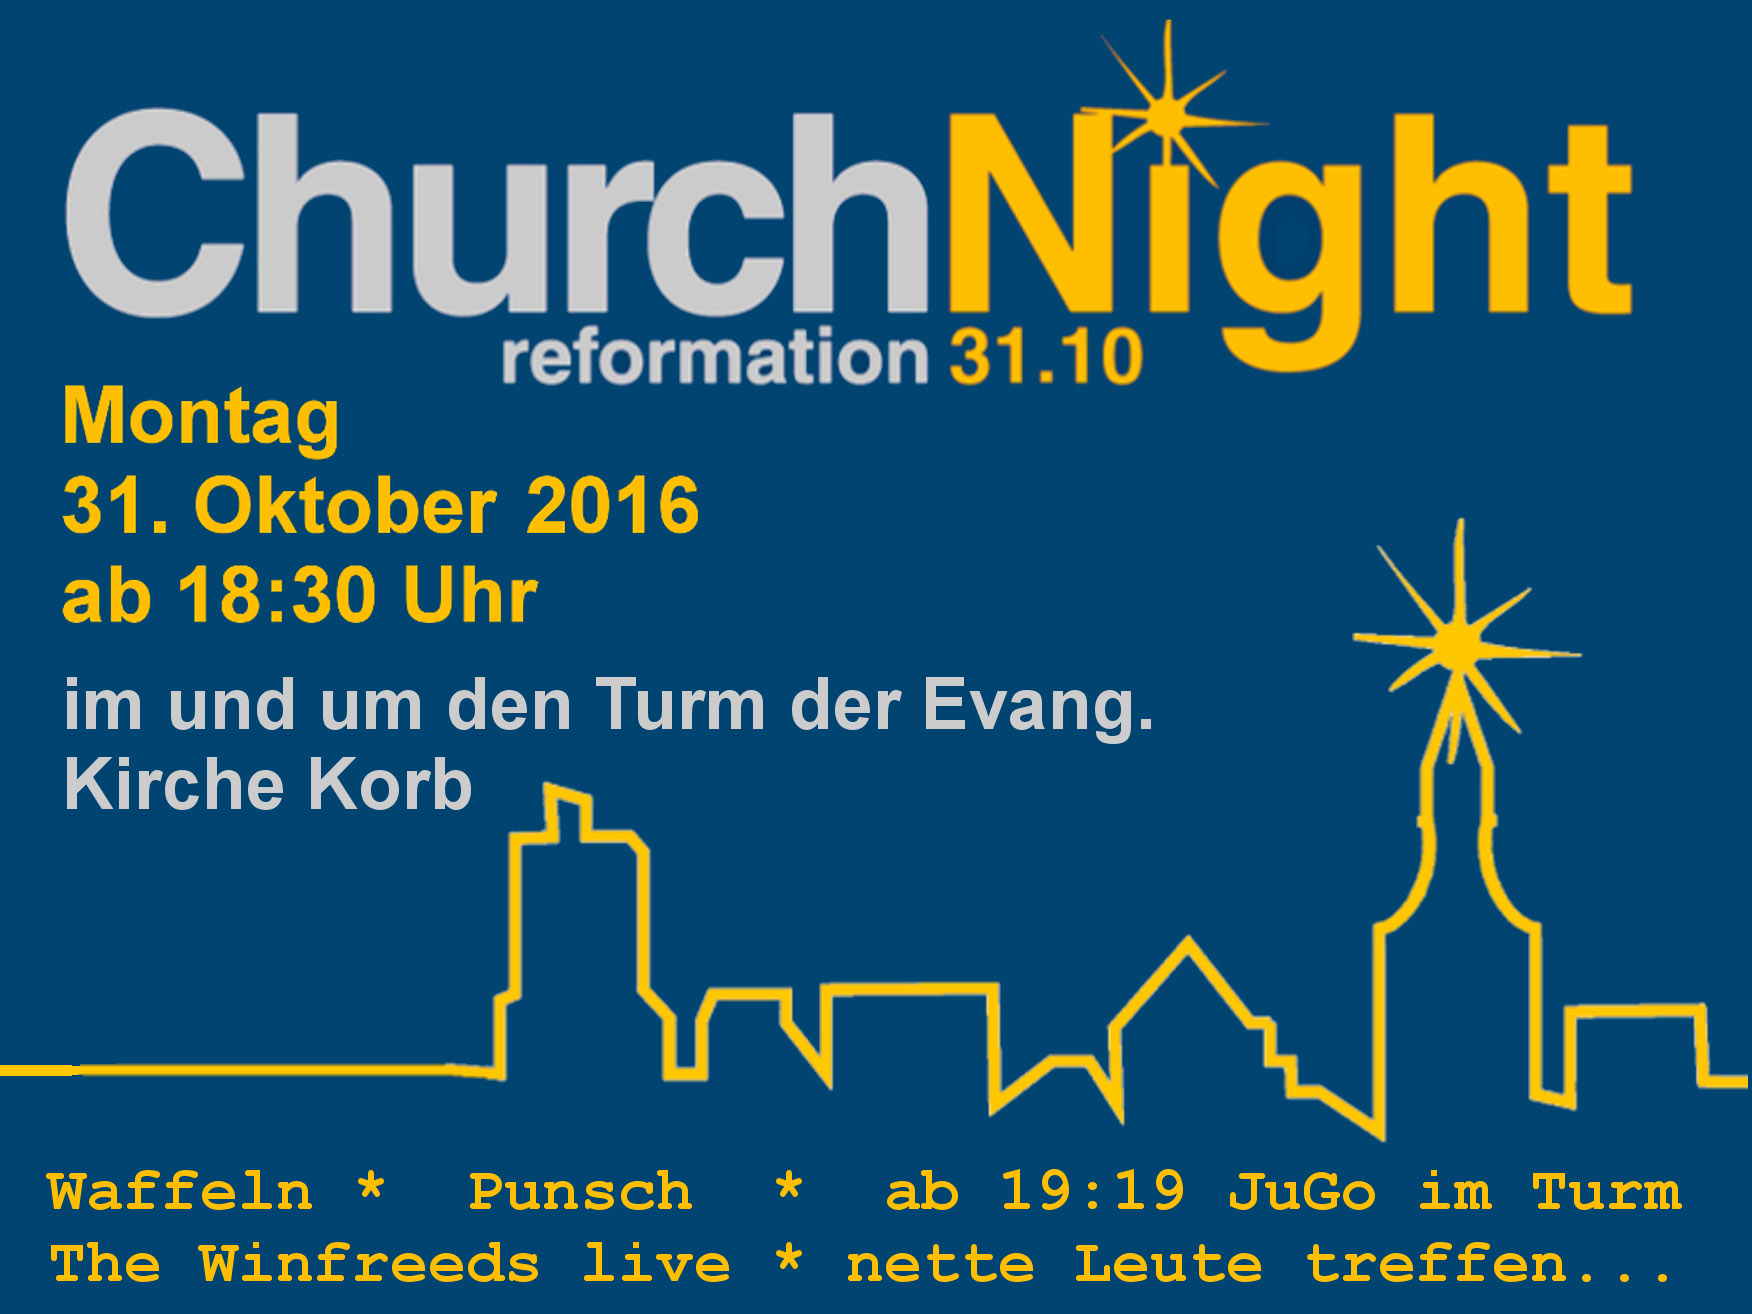 ChurchNight 2016